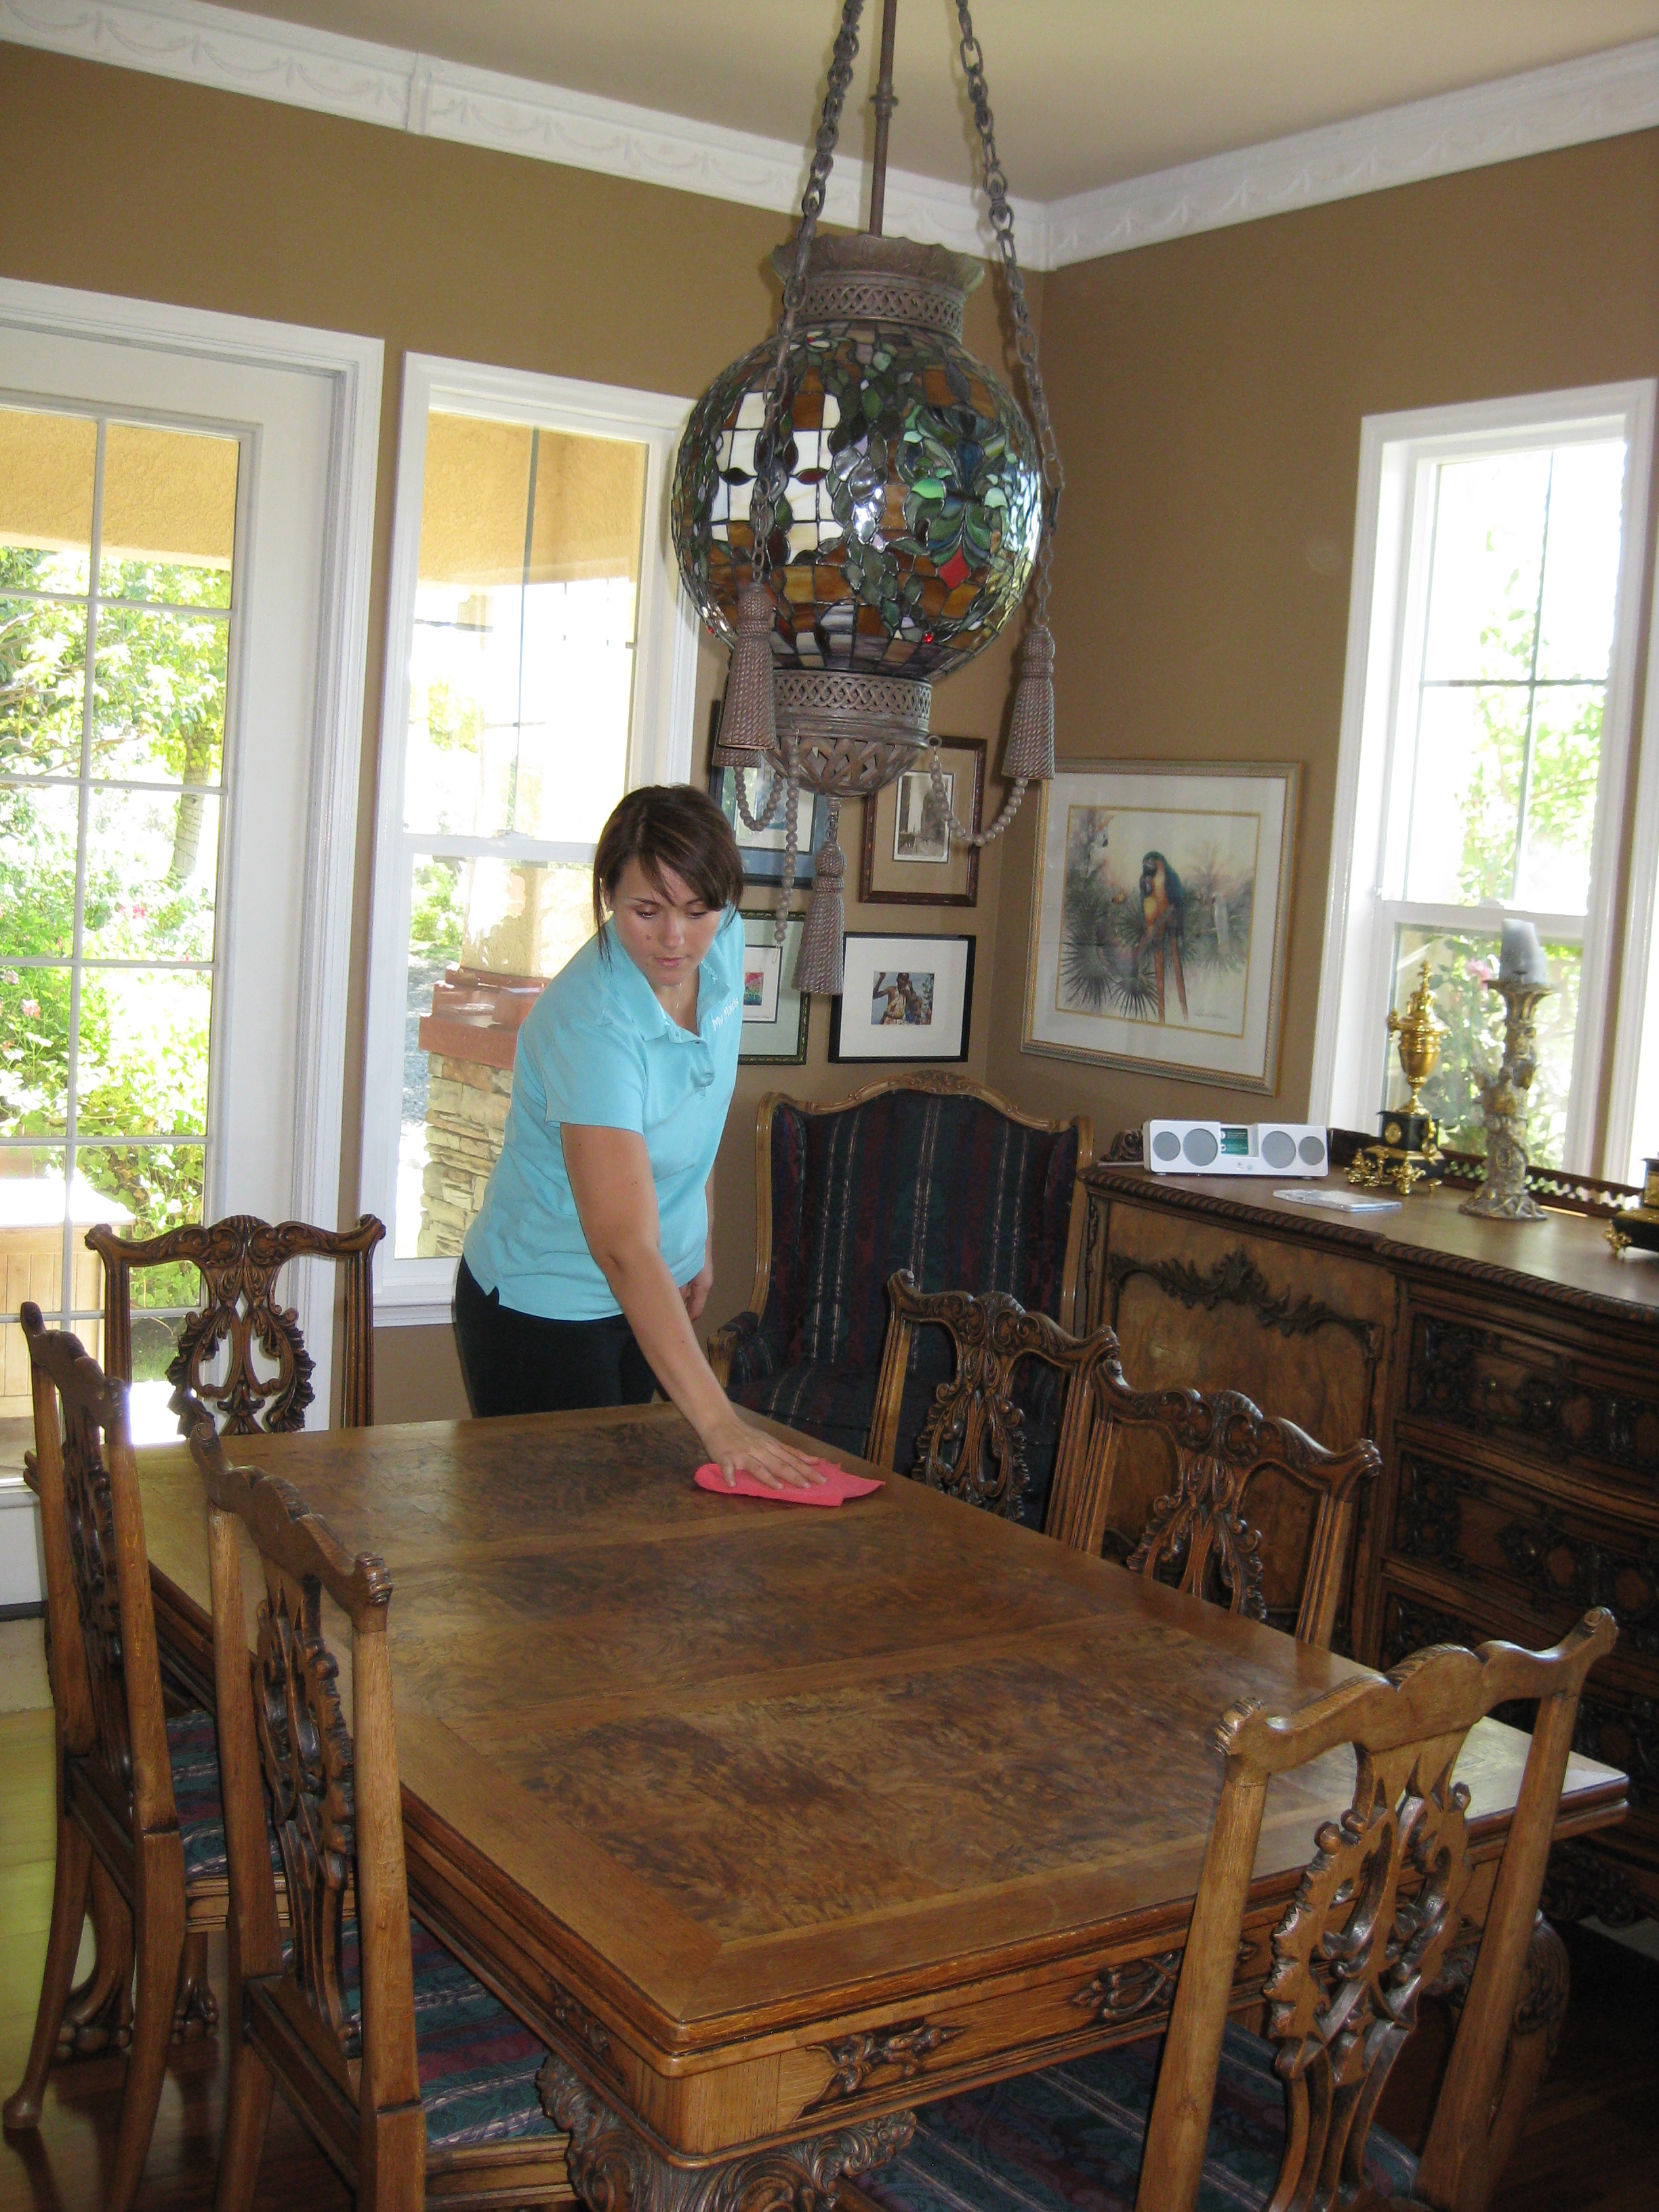 My Maids House Cleaning Service image 6